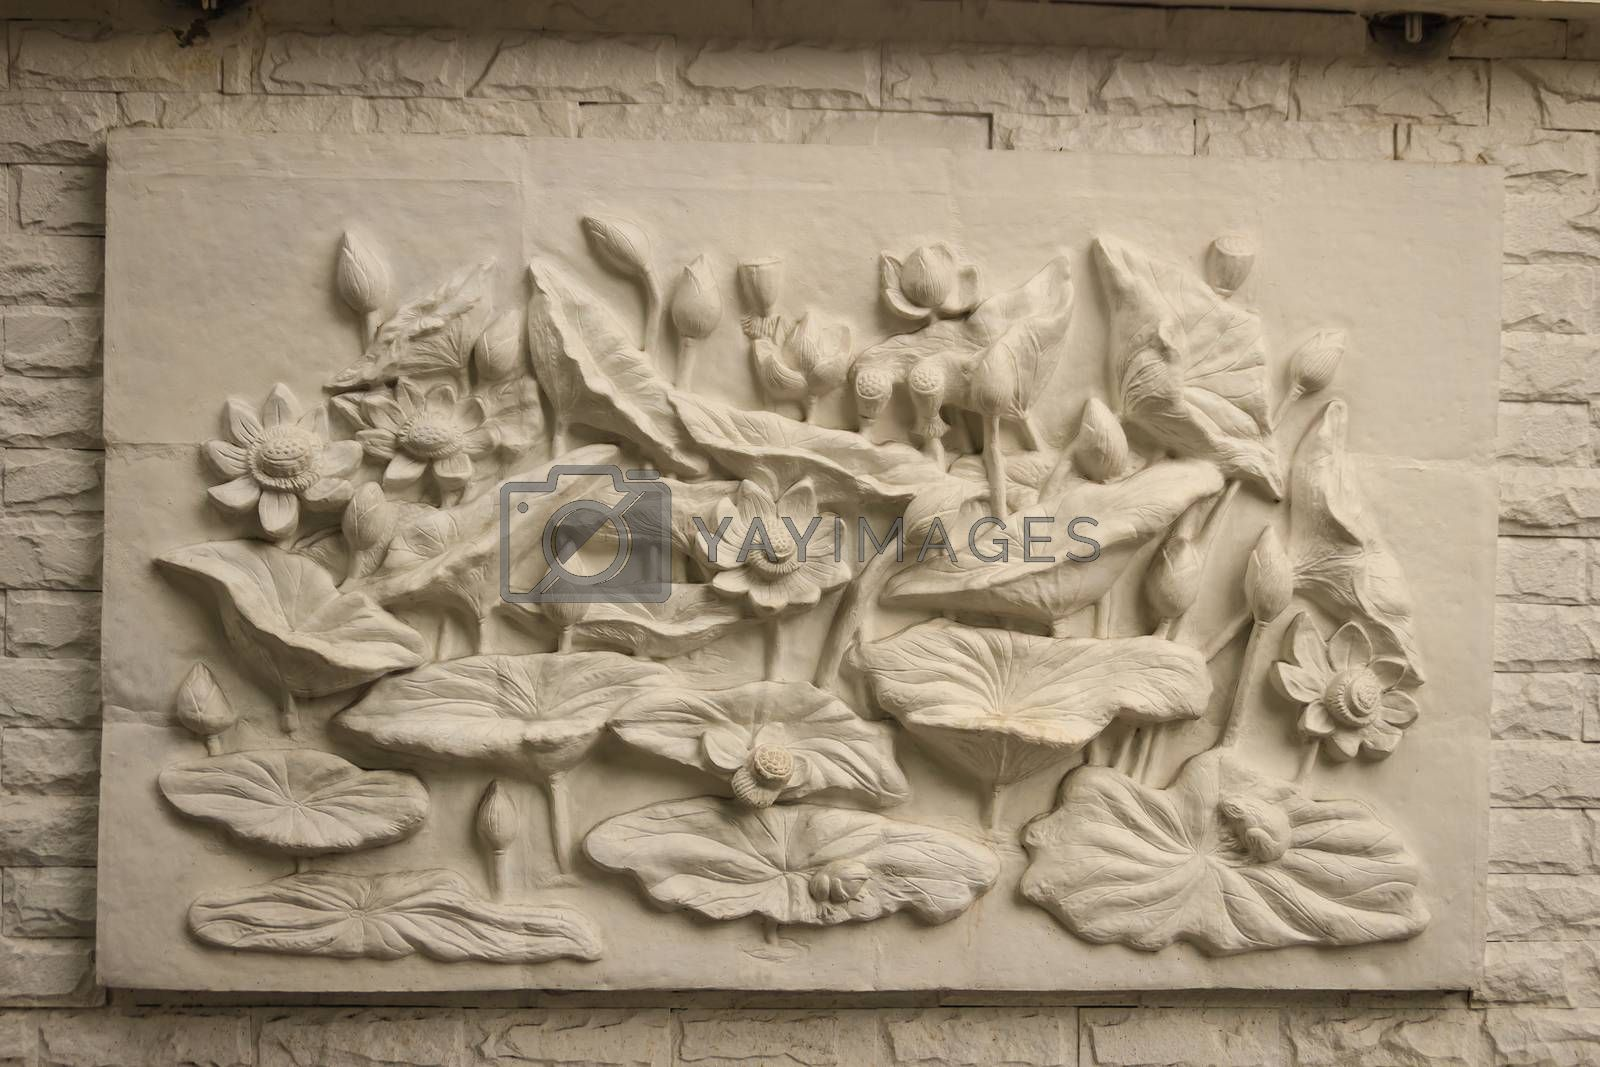 Beautiful white lotus stucco patterned on the boundary wall. Vintage white wall bas-relief stucco in plaster, depicts Lotus flowers background.